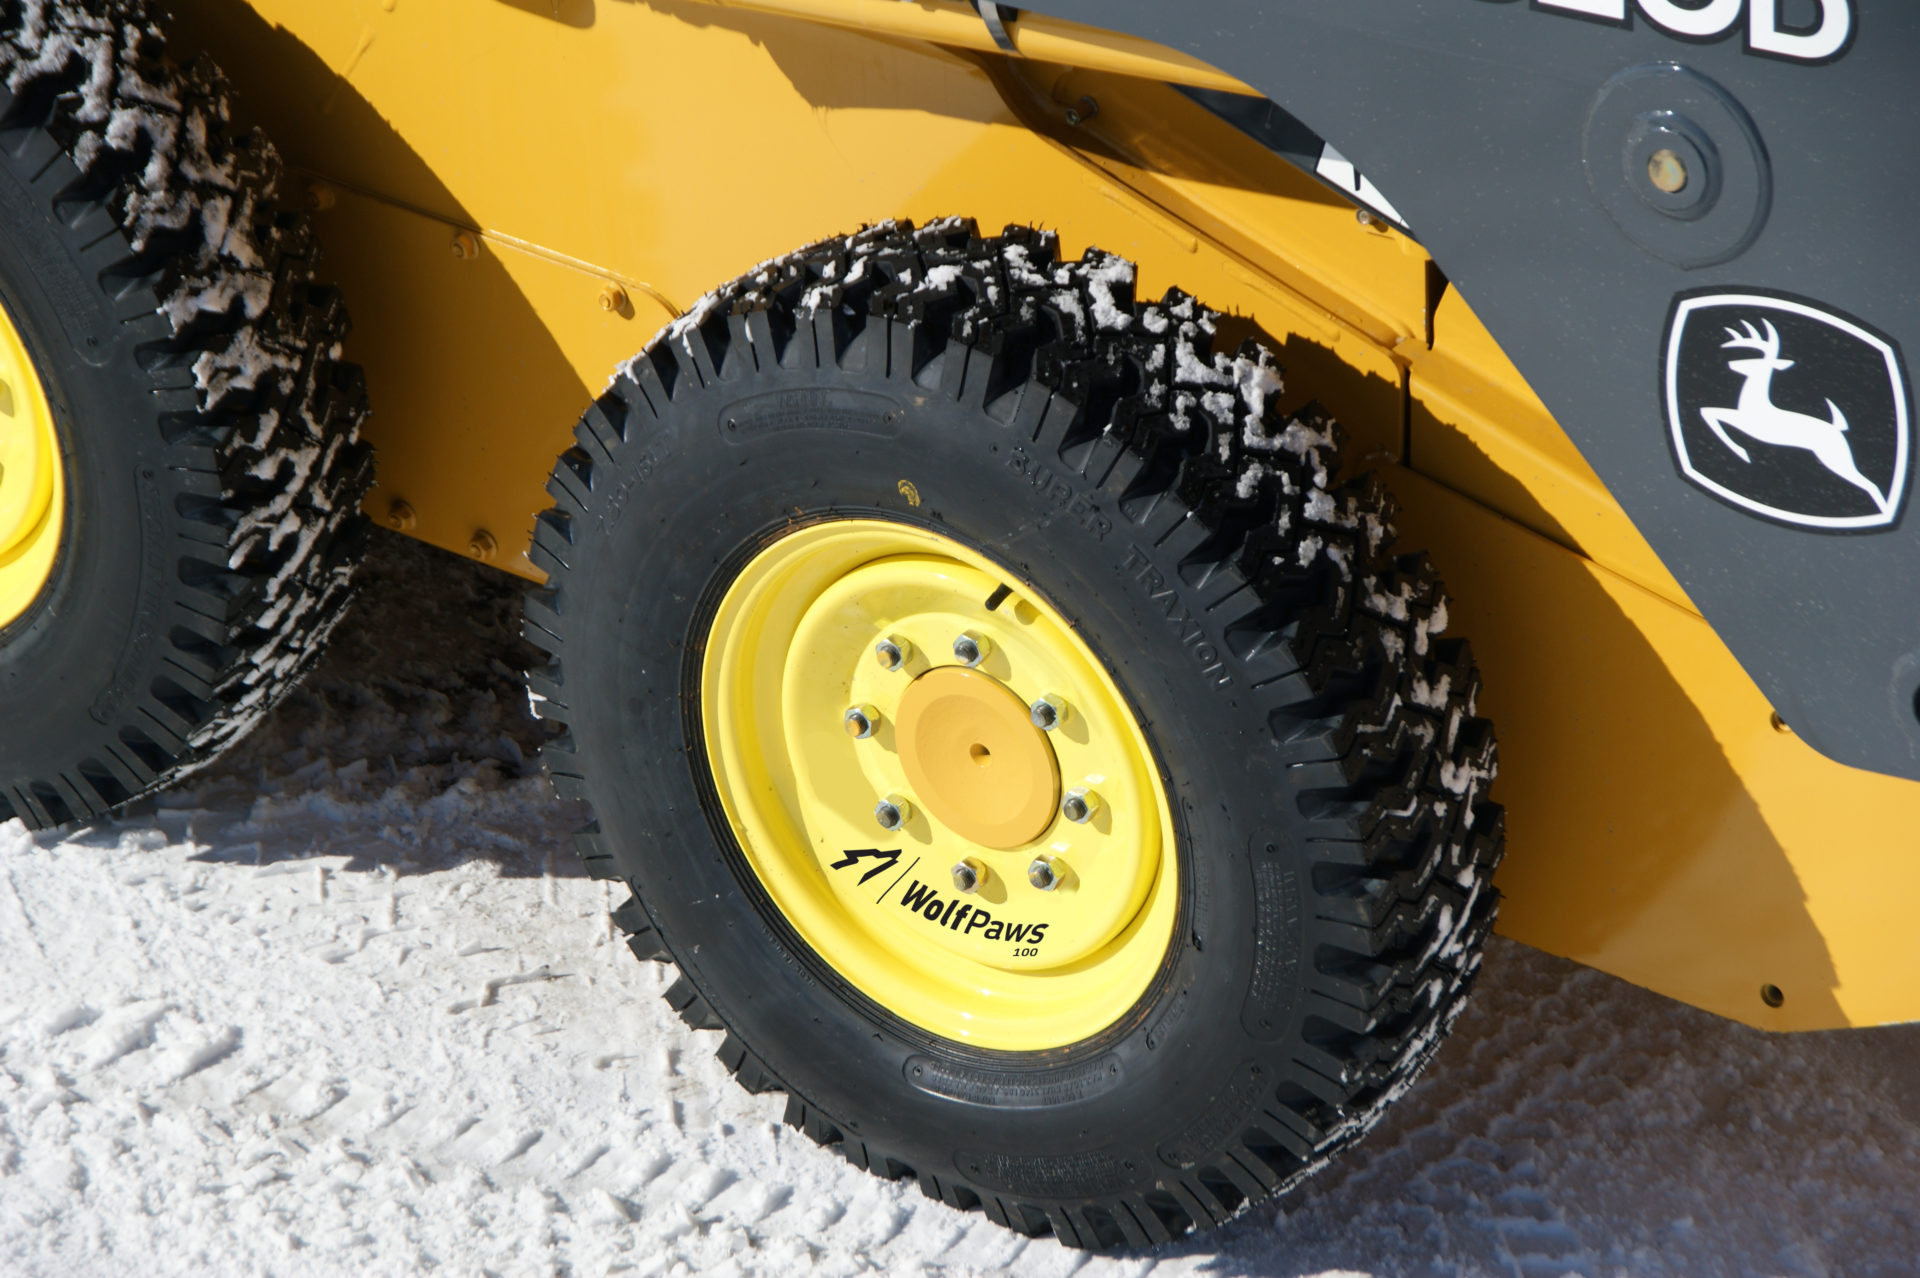 Wheels vs  Tracks – What's Better for Snow Removal? | SnowWolf Plows